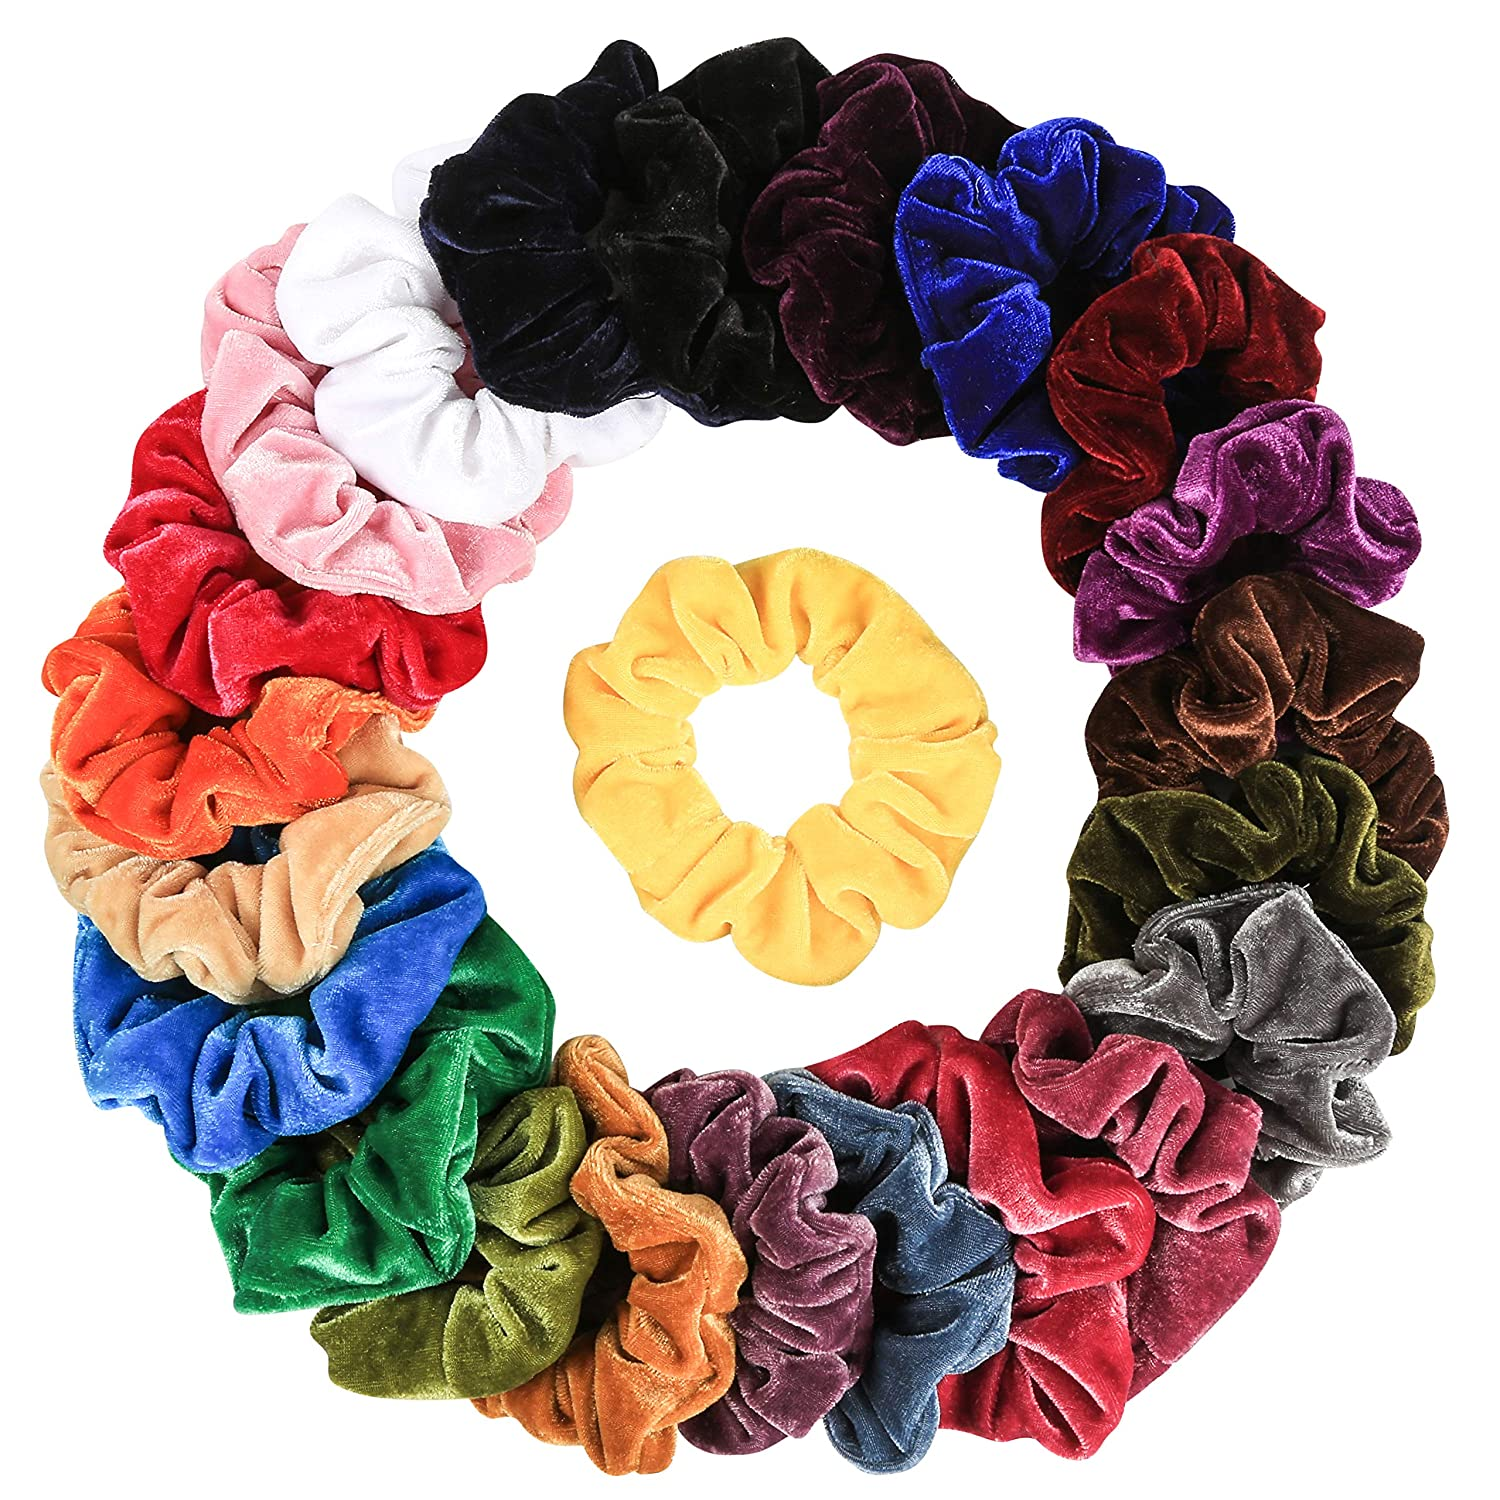 386135ff3587 Amazon.com : 23 Pcs Hair Scrunchies Velvet Elastic Hair Bands Scrunchy Hair  Ties Ropes Scrunchie for Women or Girls Hair Accessories - 23 Assorted  Colors ...